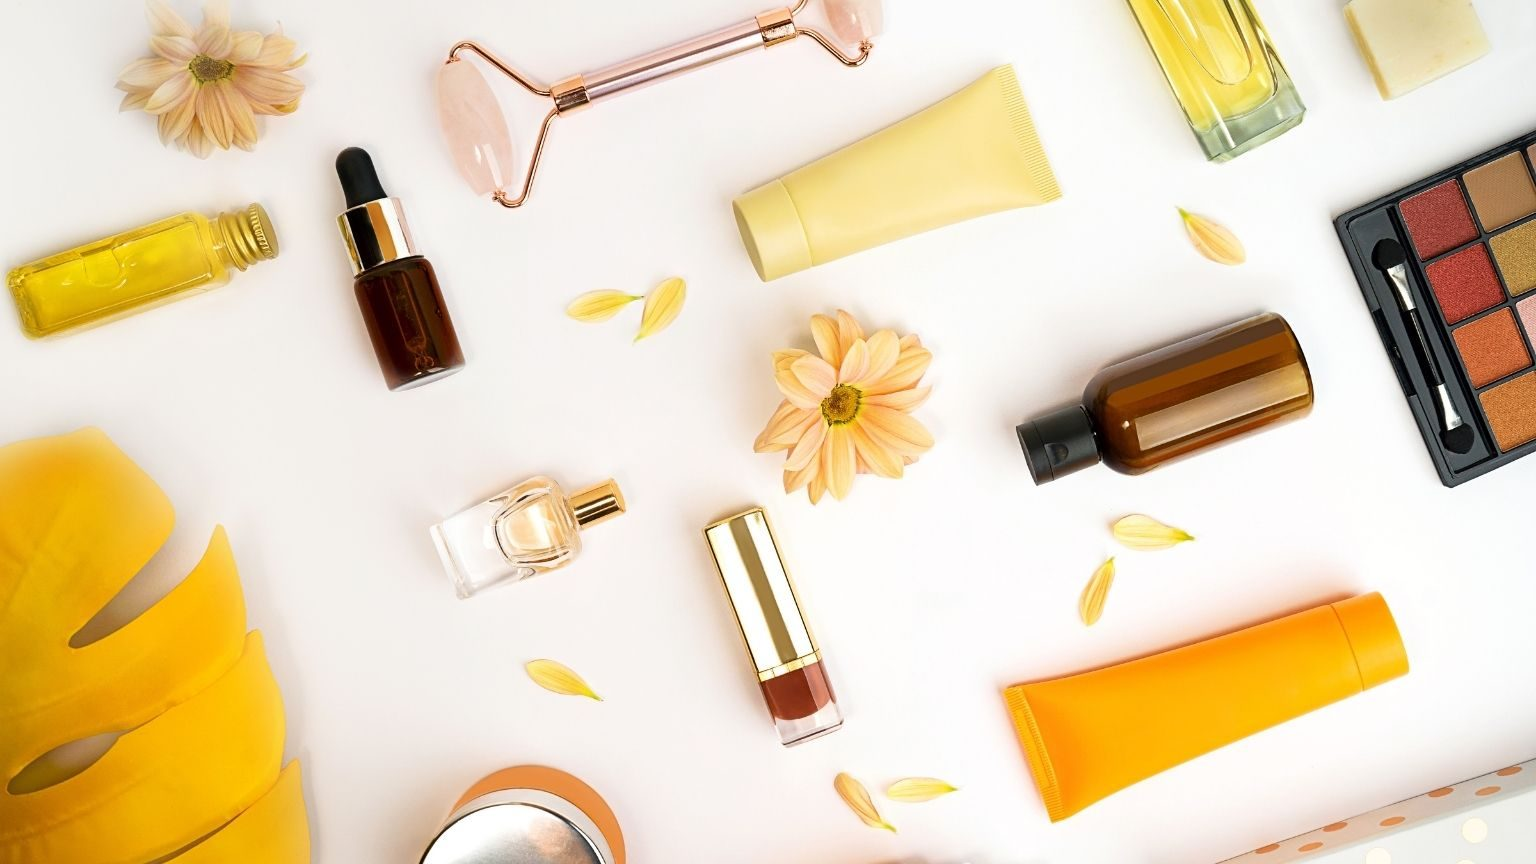 Skincare products on table